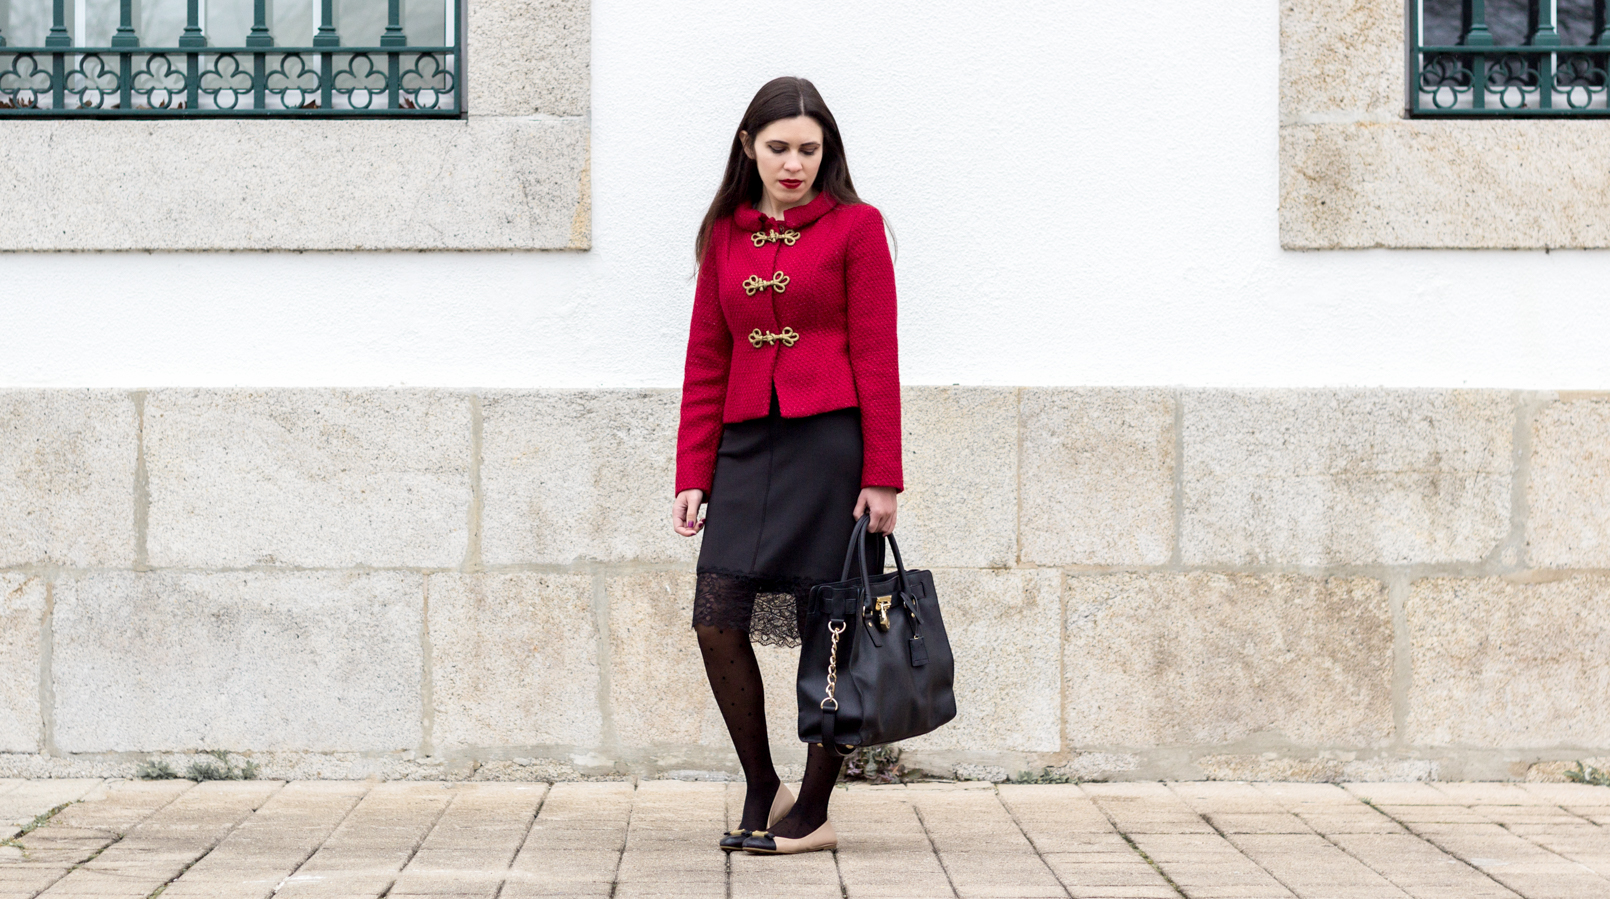 Le Fashionaire Today is for living red wool coat gold military details lanidor black lingerie lace zara dress black bag hamilton michael kors 0912F EN